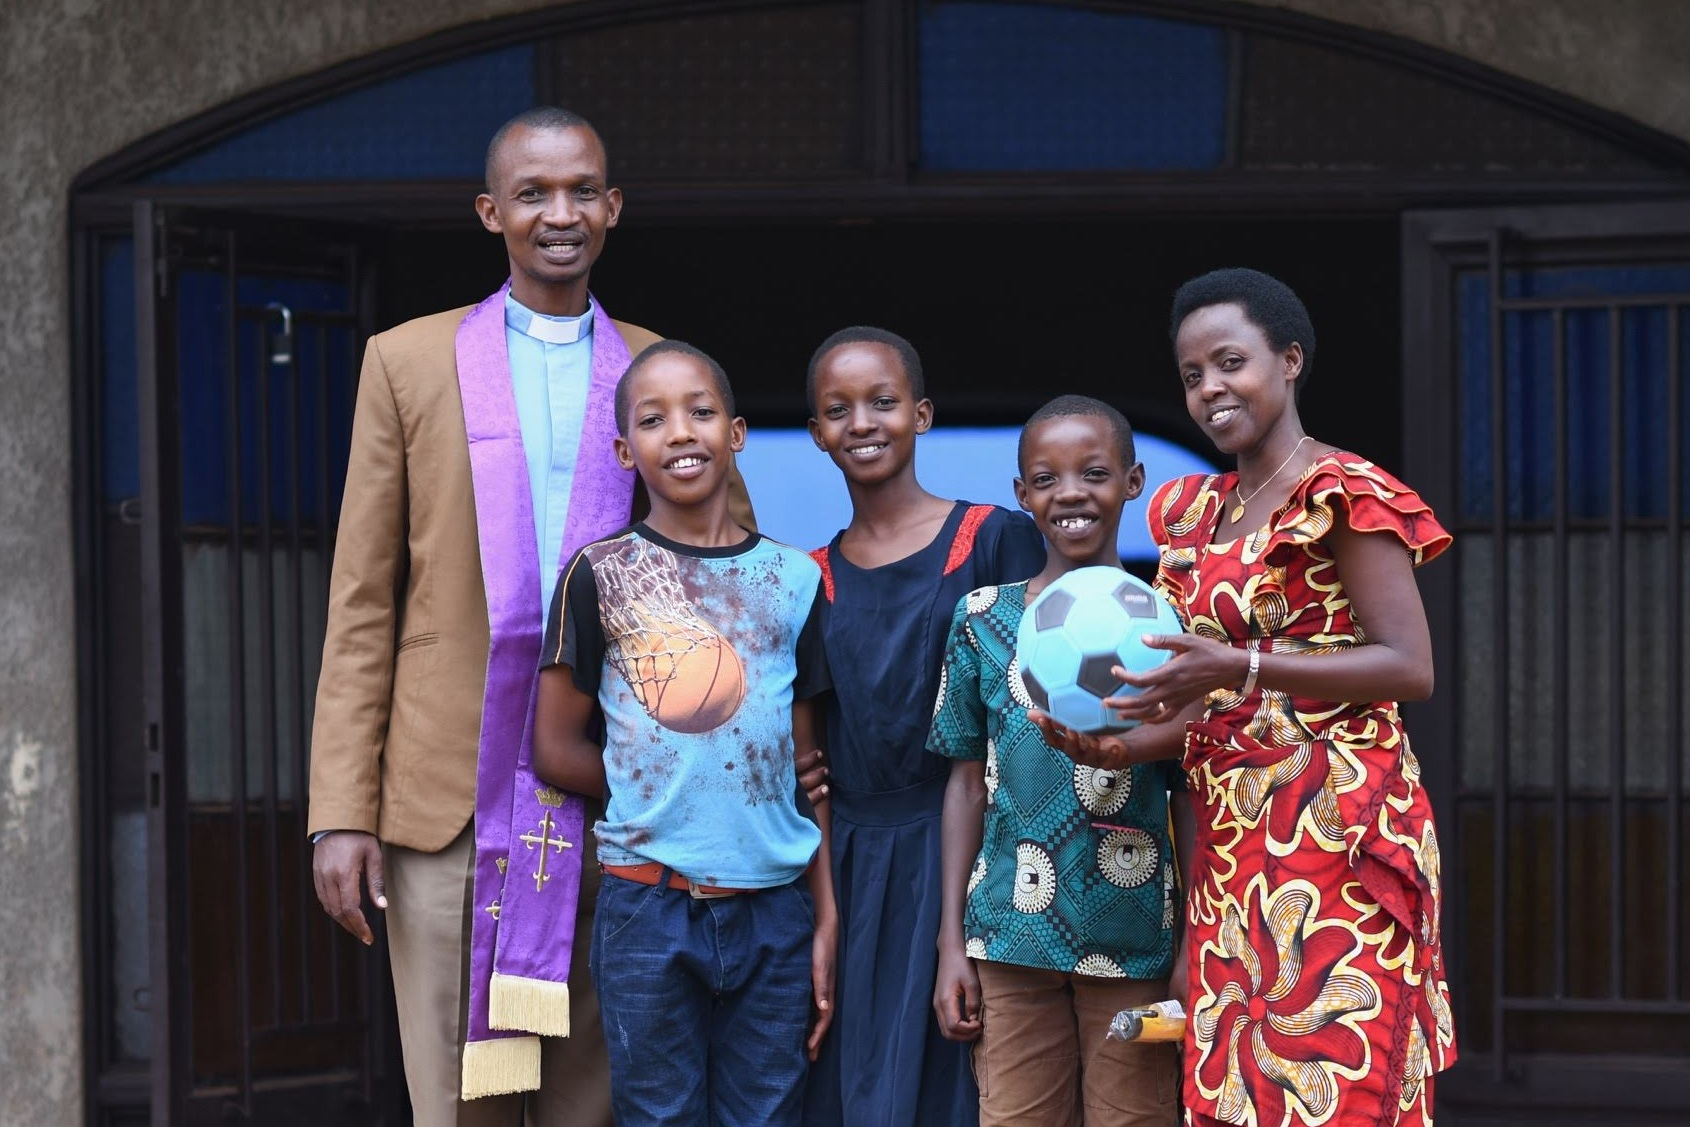 Pastor Xavier and his family